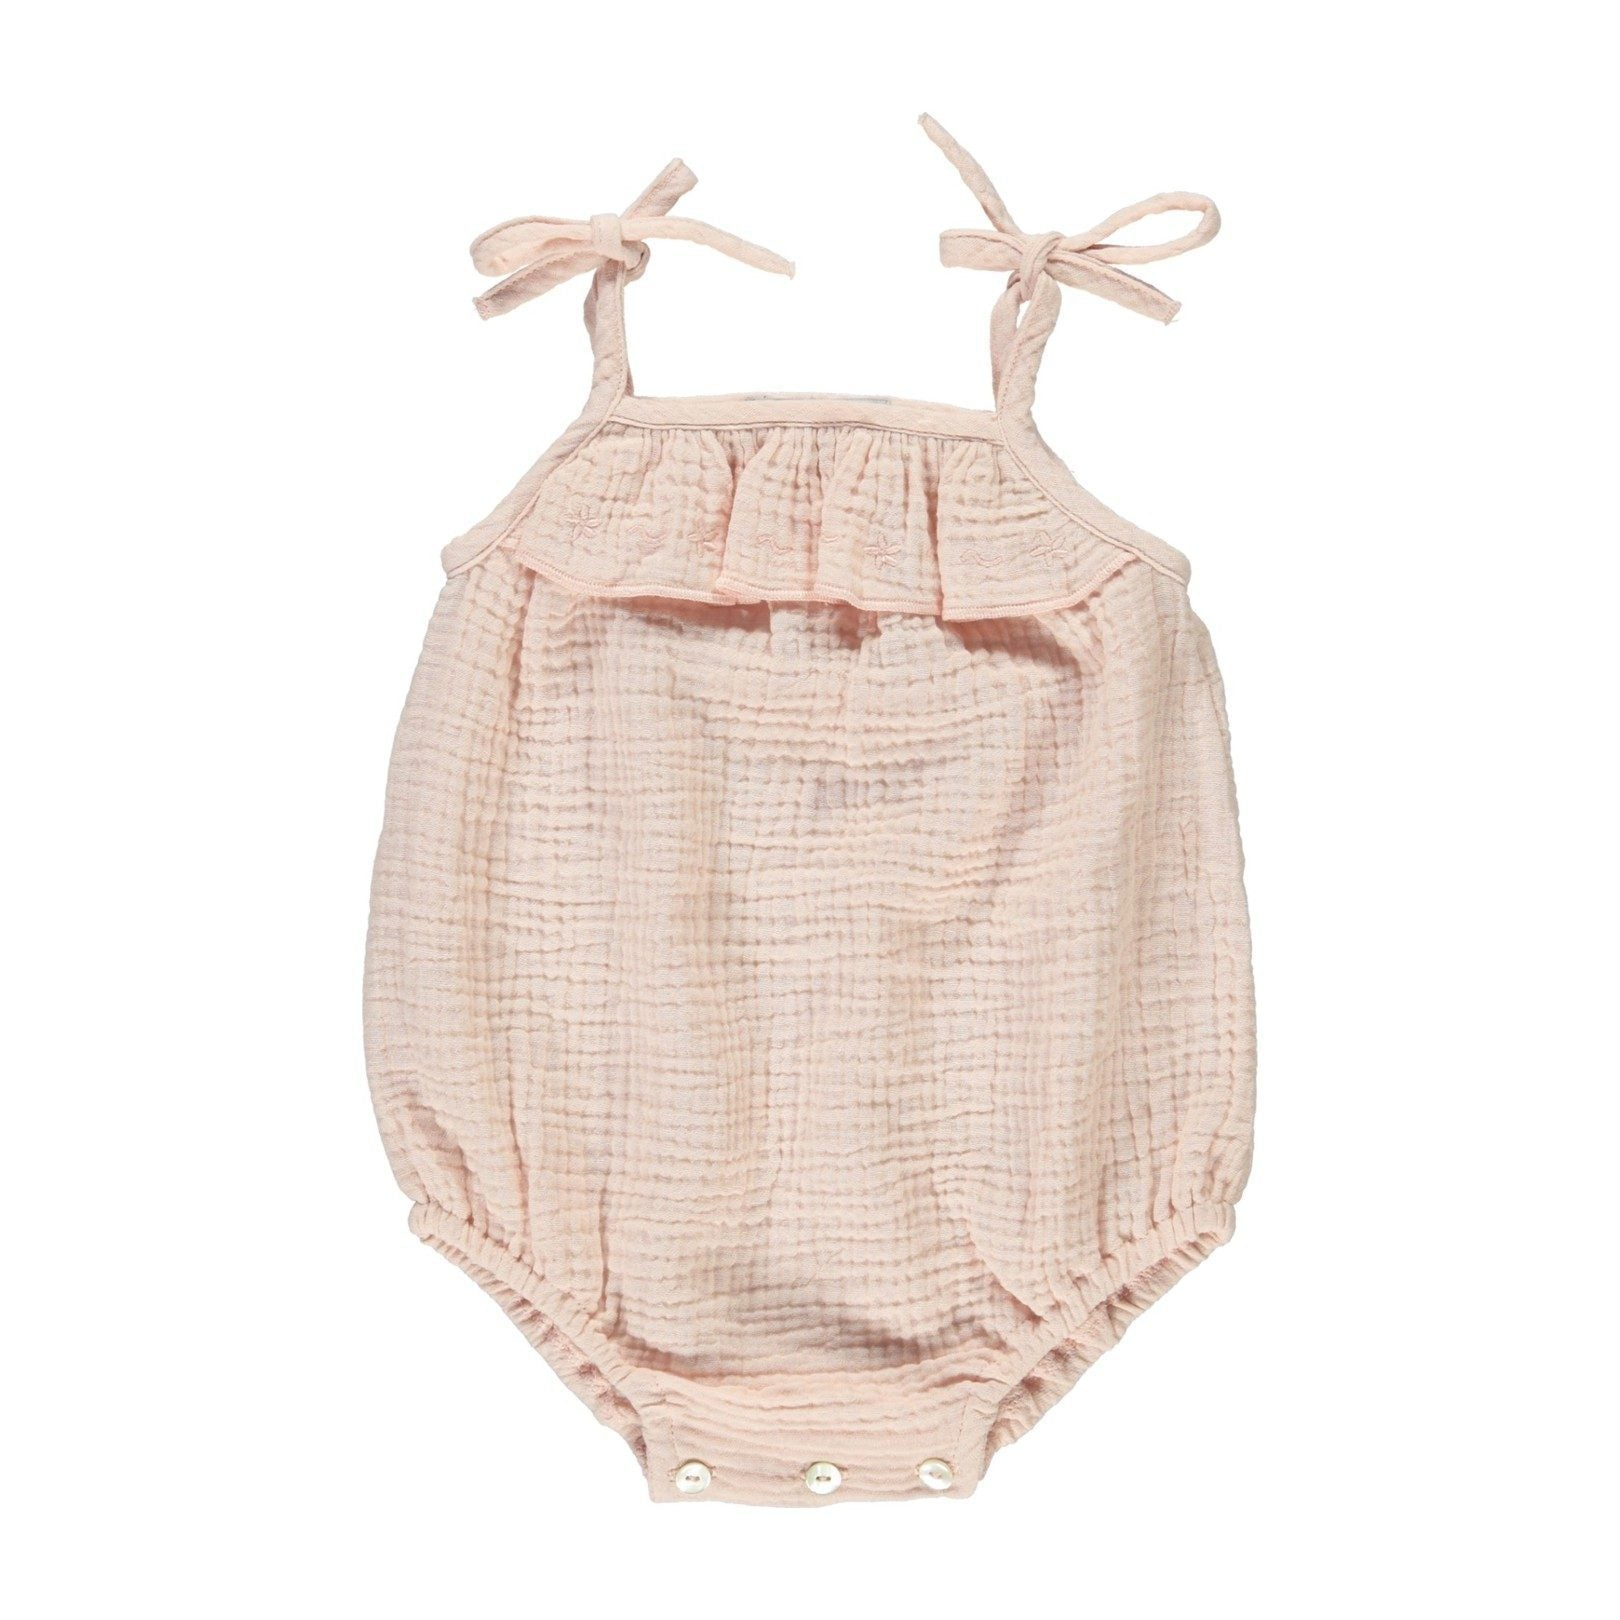 ORGANIC COTTON 'AMINA' BABY ROMPER, OLD PINK  | BEBE ORGANIC - Spinel Boutique